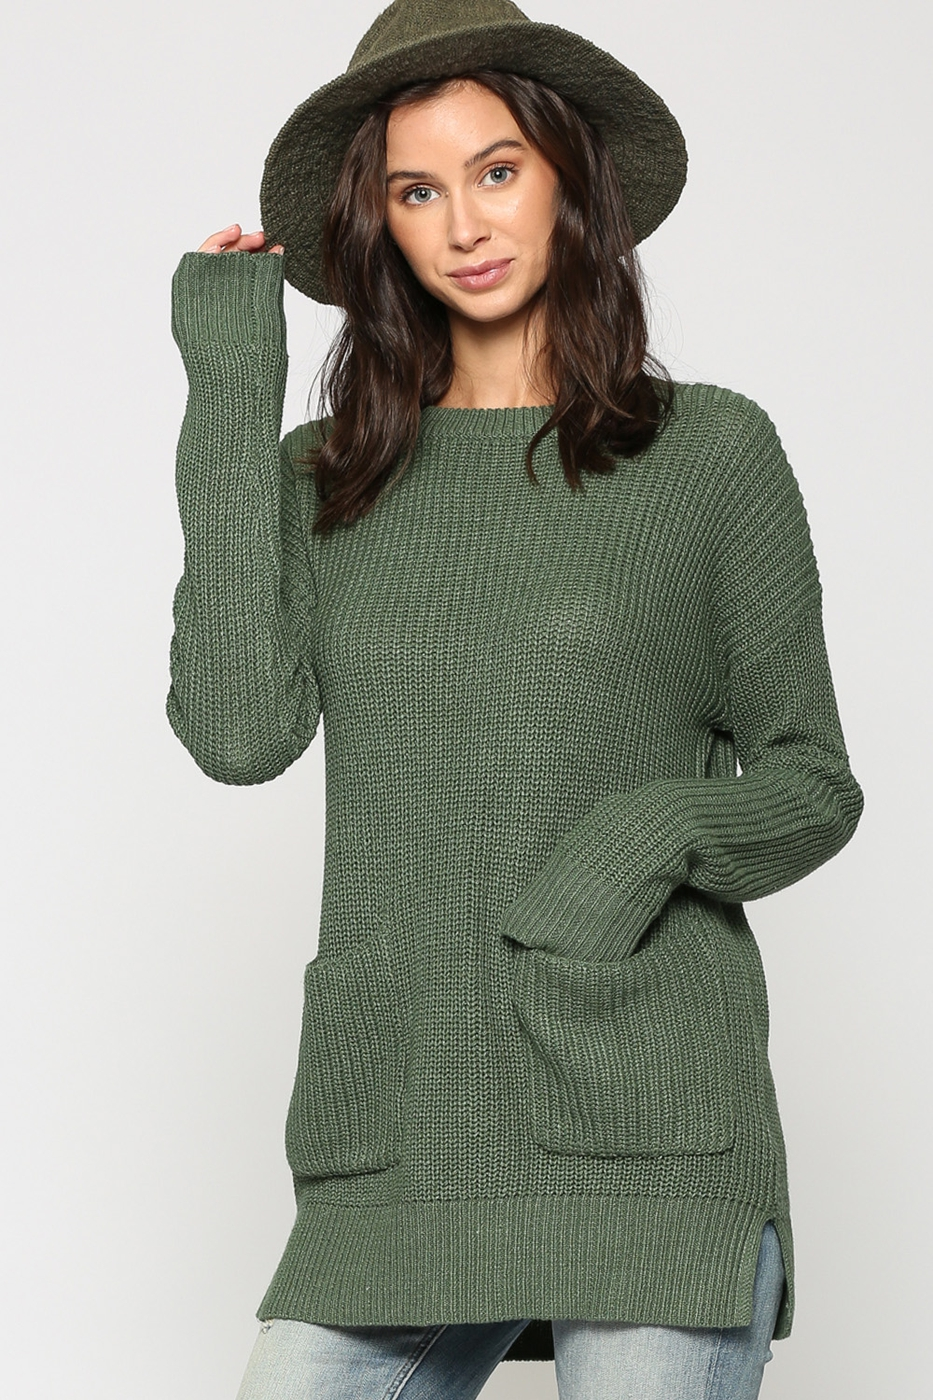 SWEATER WITH TWO FRONT POCKETS - orangeshine.com